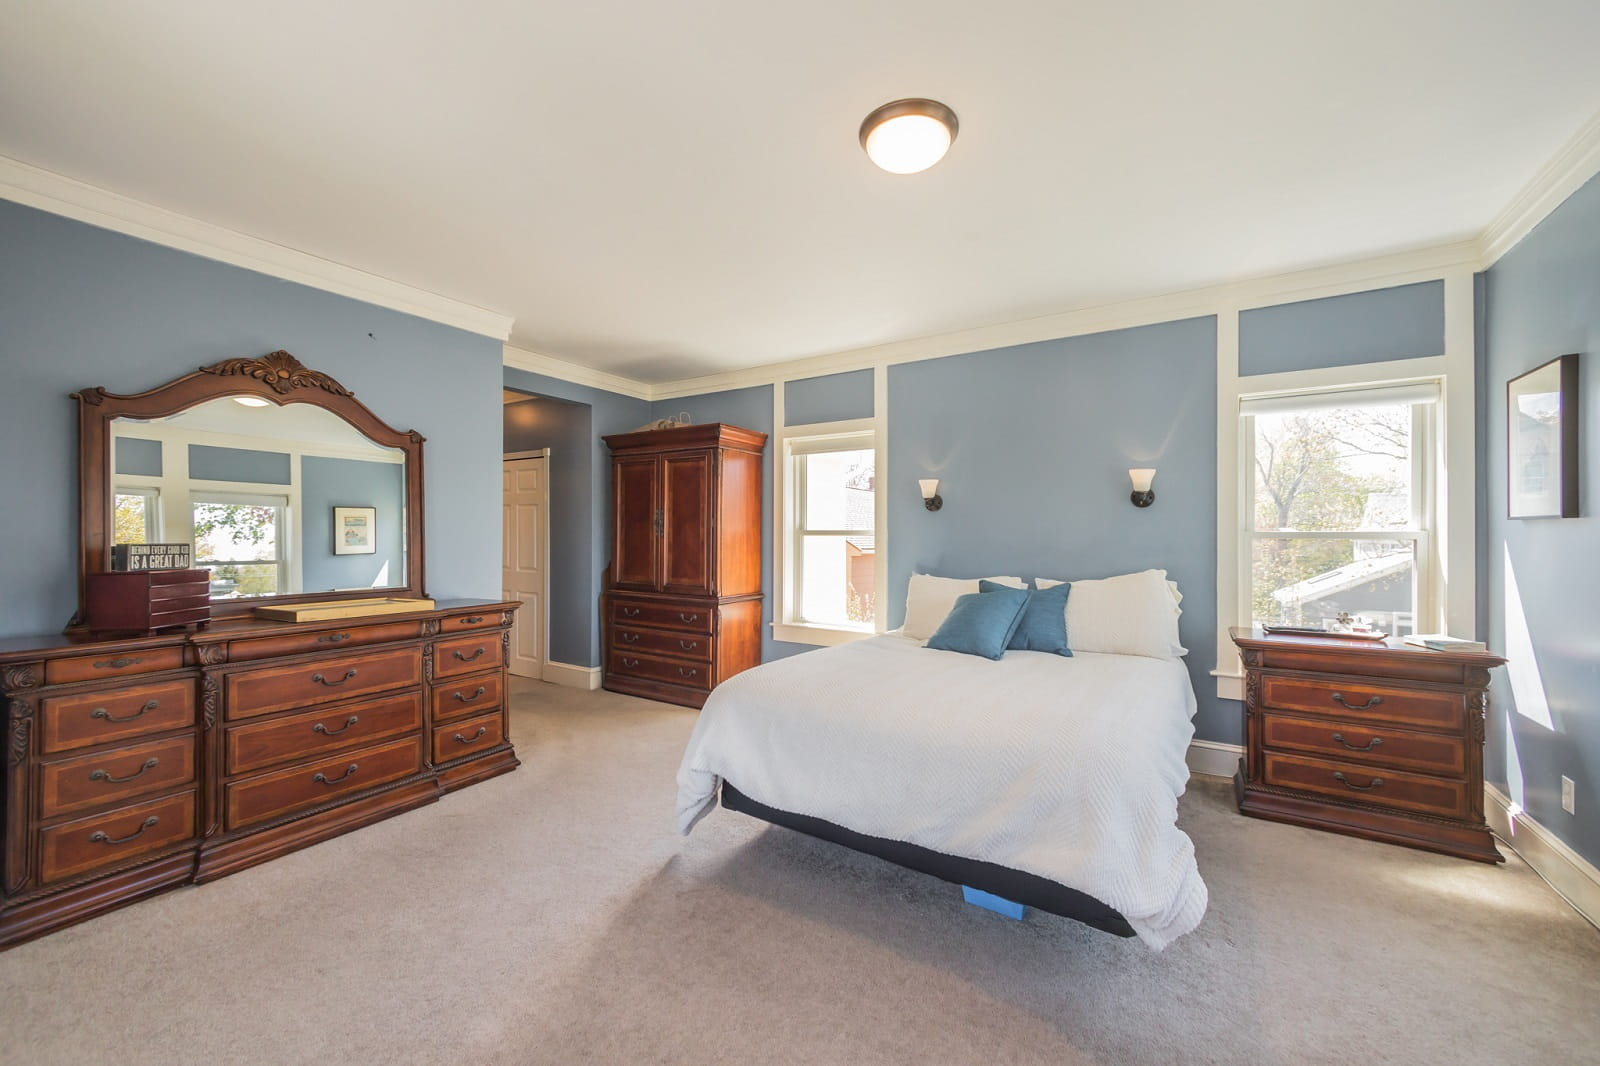 Real Estate Photography in Boston - MA - USA - Bedroom View